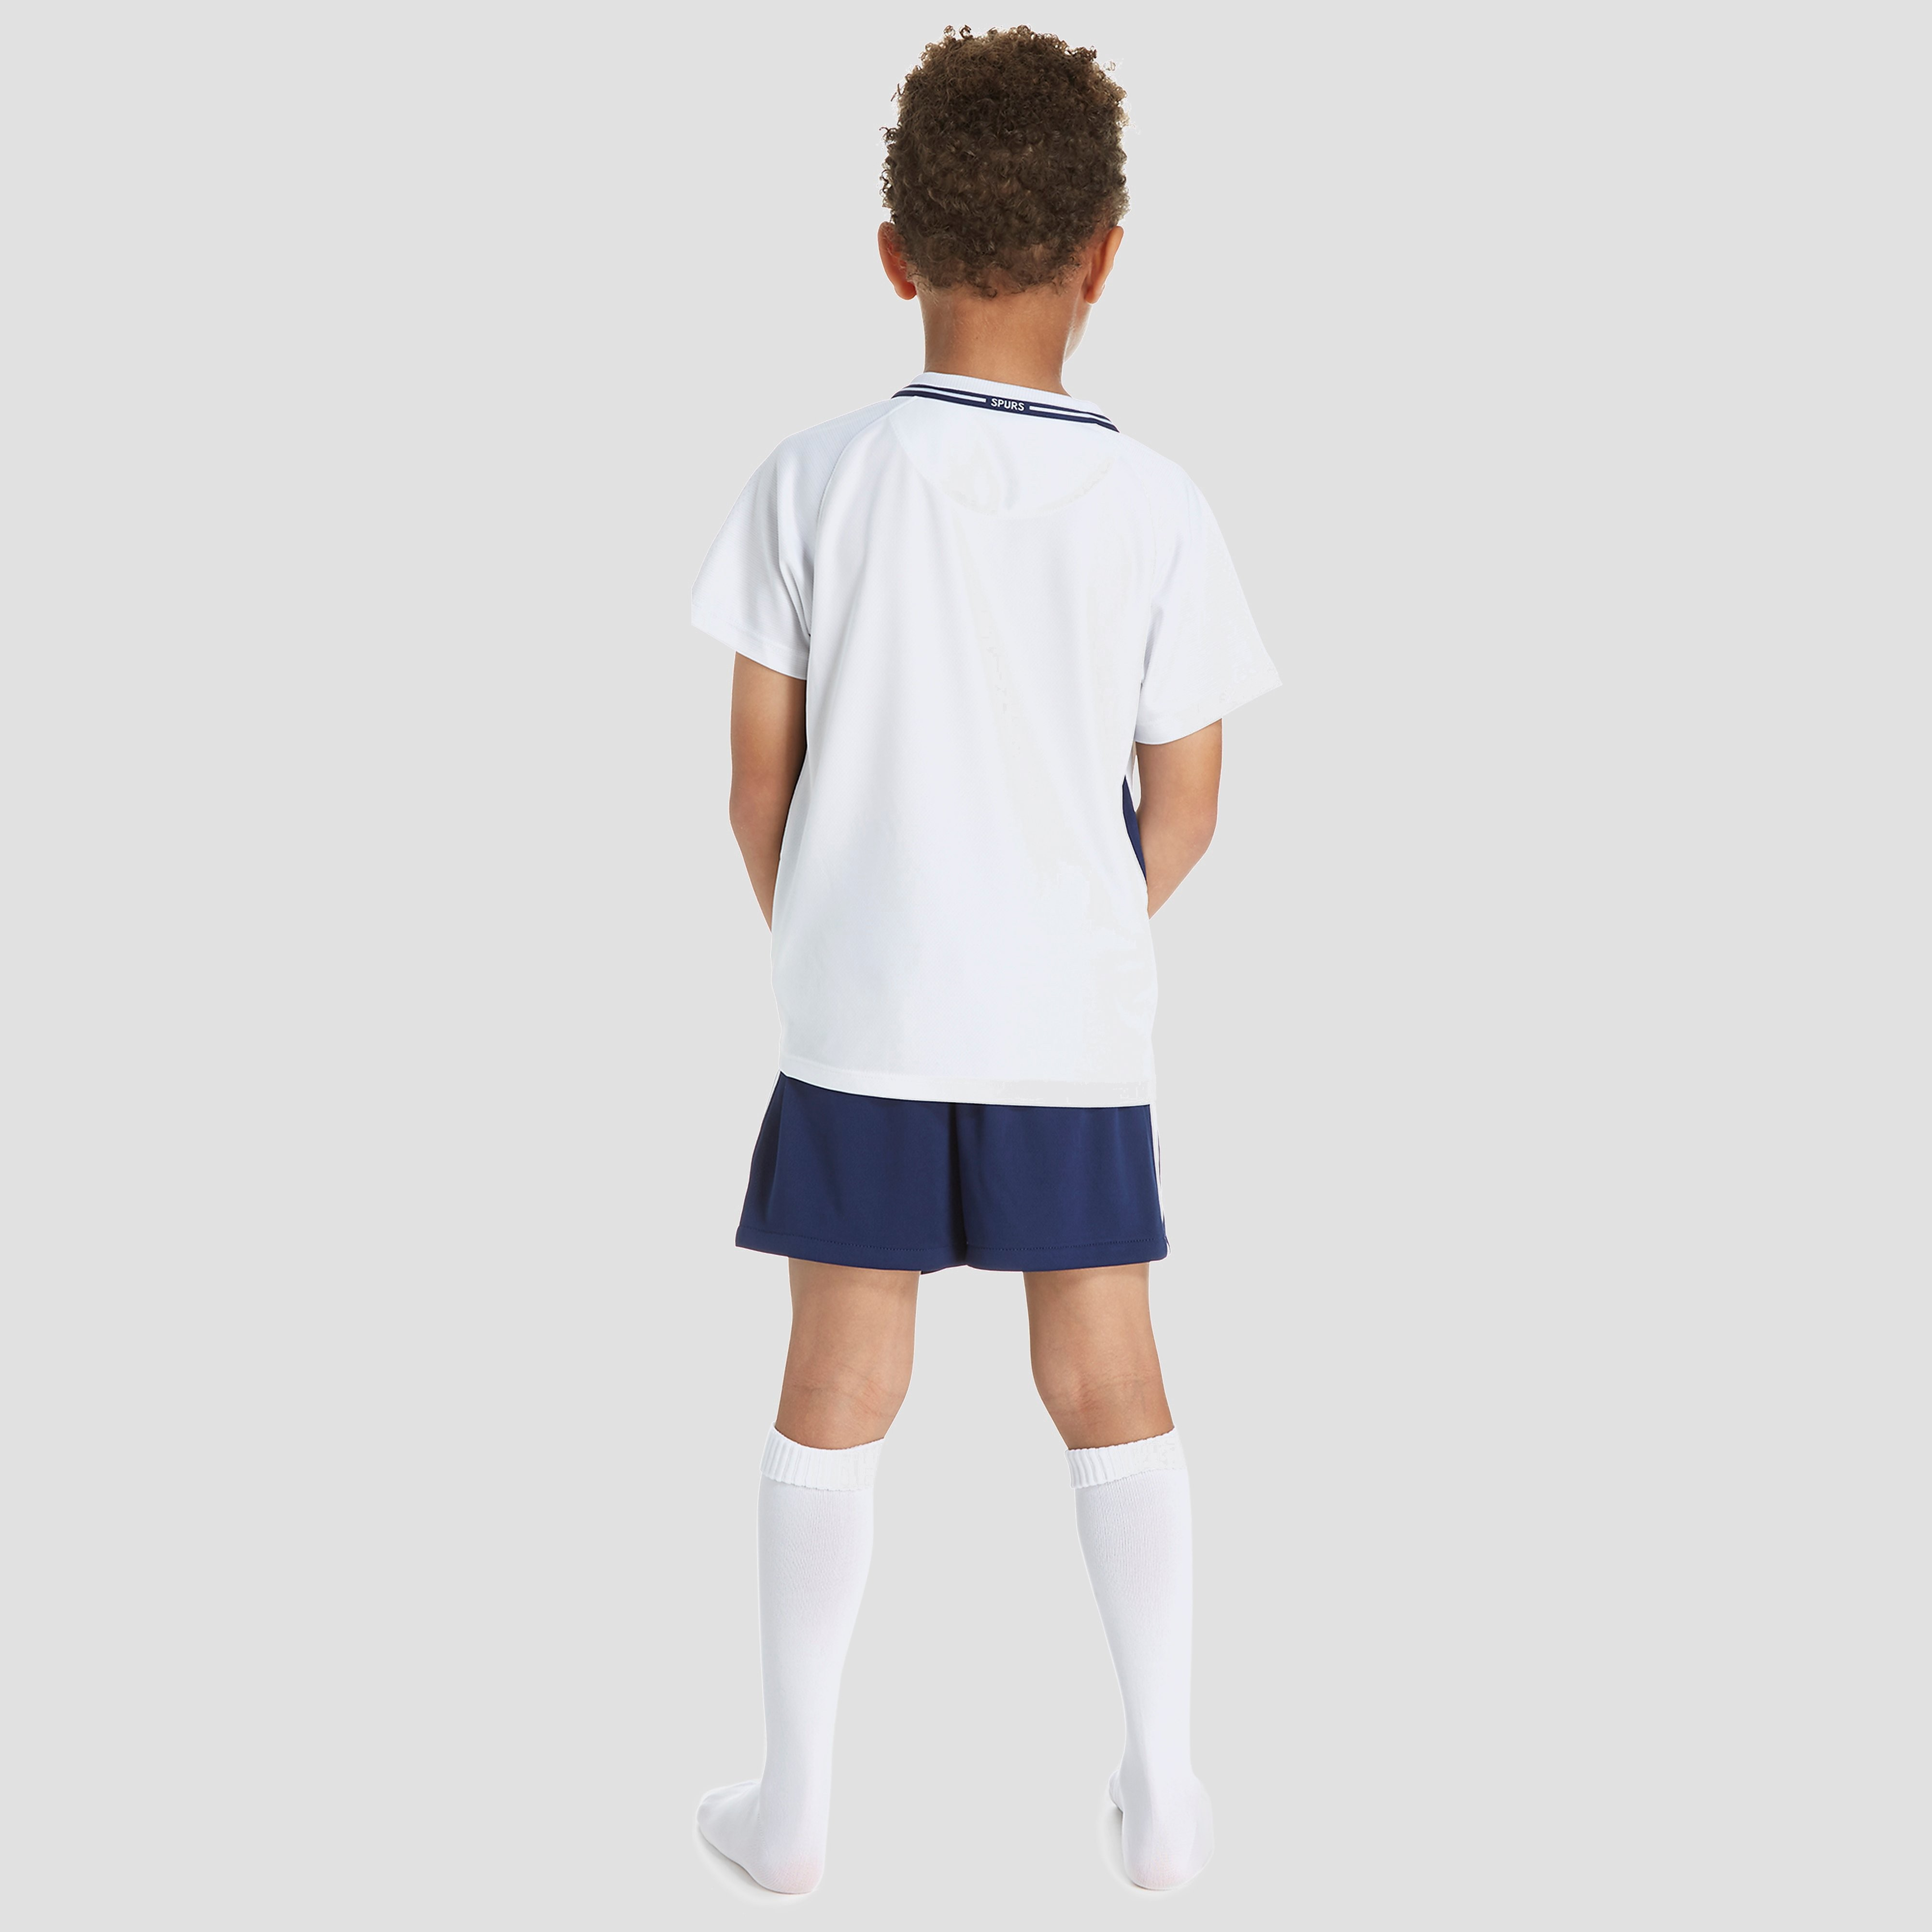 Nike Tottenham Hotspur 2017/18 Home Kit Children